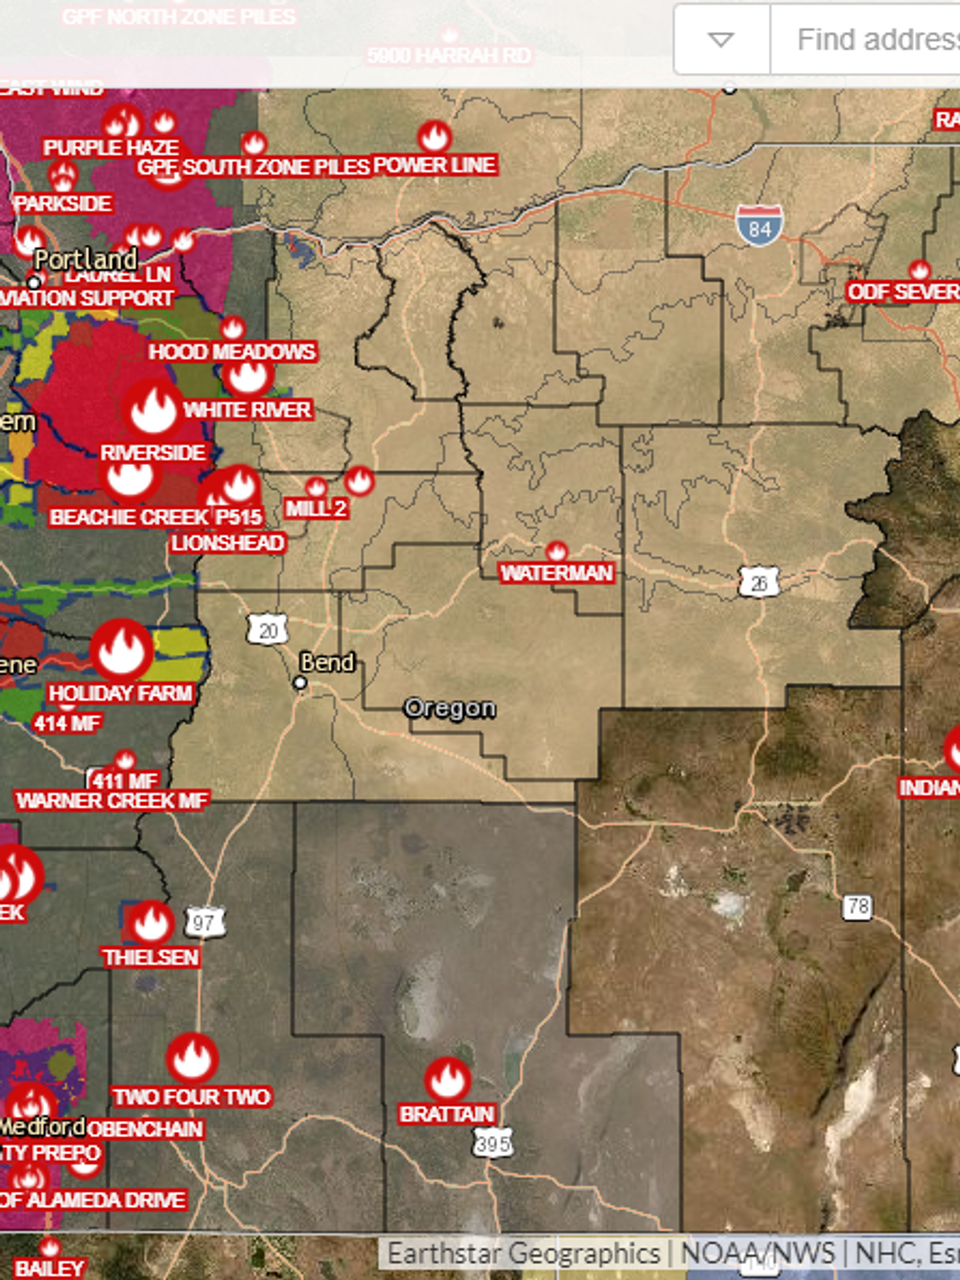 Oregon Fire Map Current Interactive map shows current Oregon wildfires and evacuation